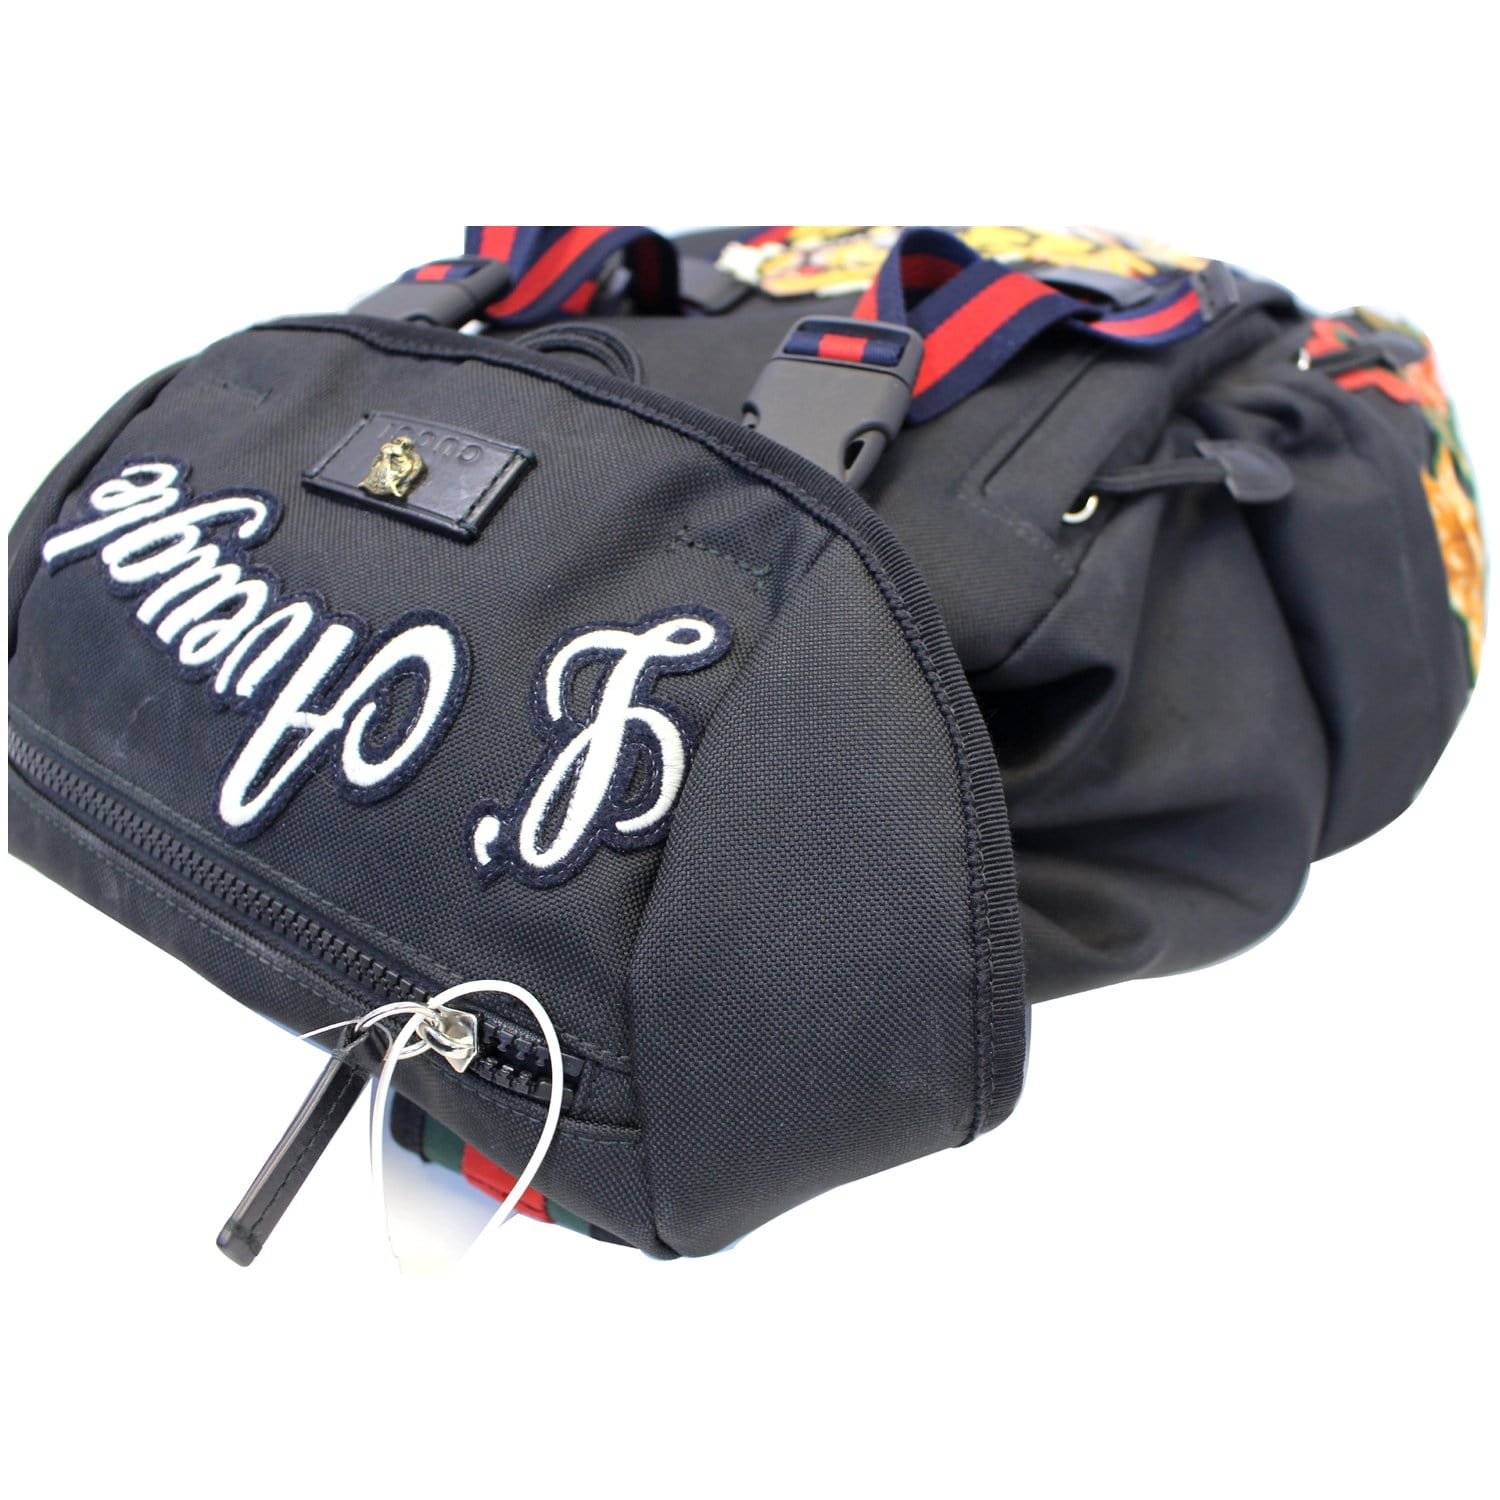 cc79d9f335e9 GUCCI Techpack Backpack with Embroidery Men's Backpack Bag 429037-US